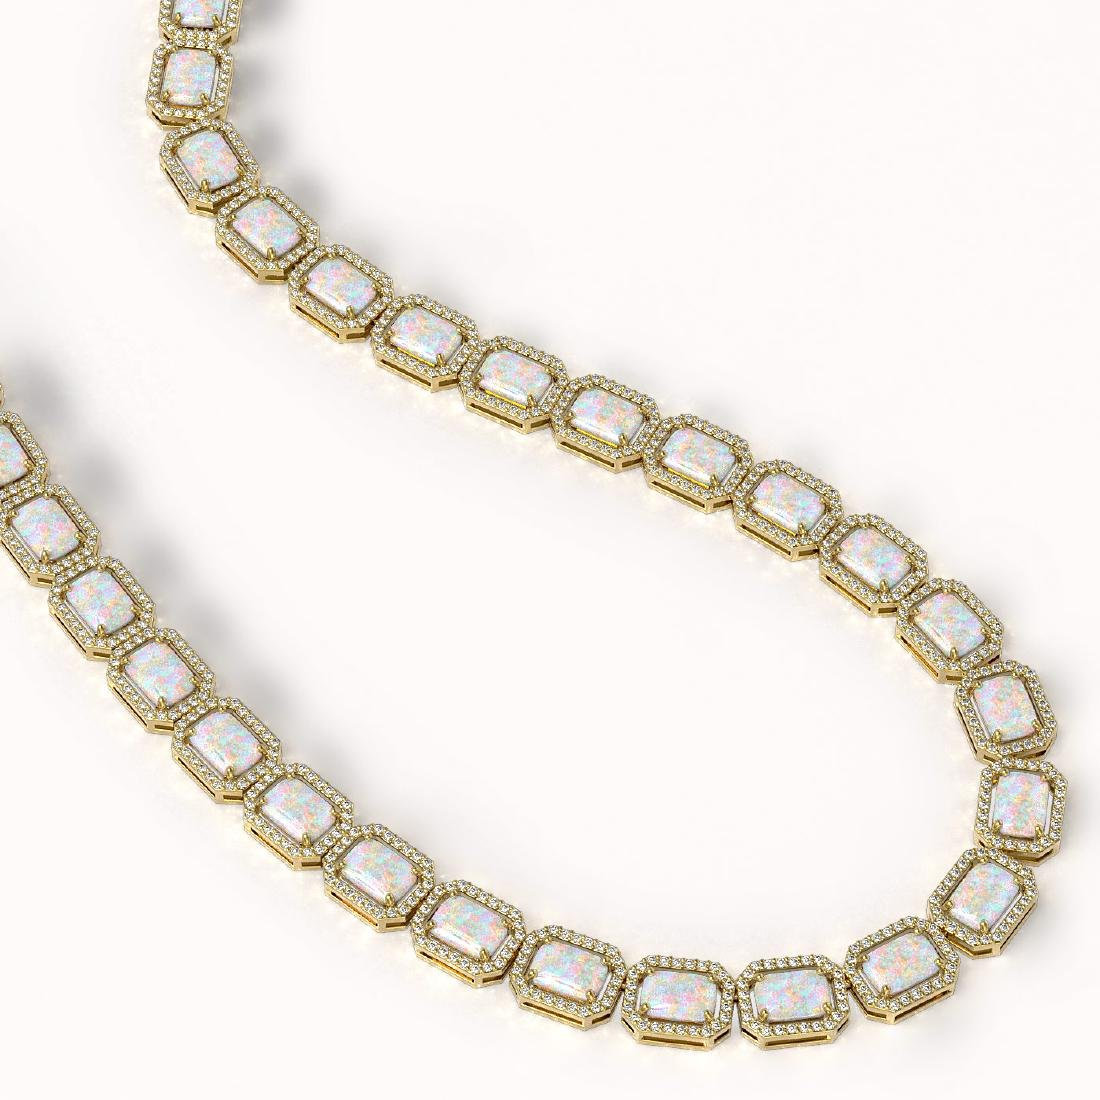 37.69 CTW Opal & Diamond Halo Necklace 10K Yellow Gold - 2